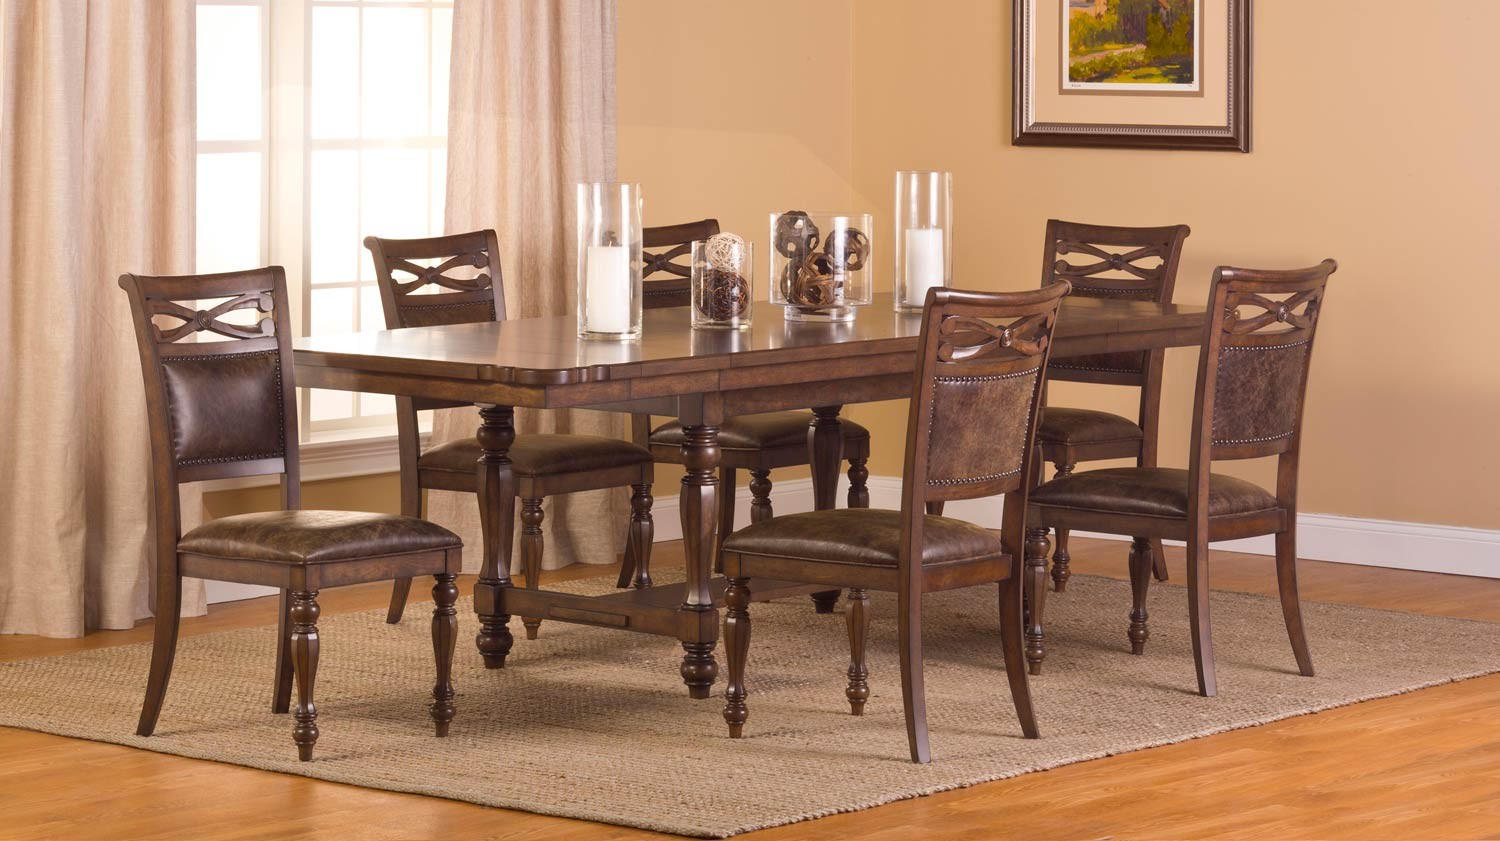 Hillsdale Seaton Springs 7 pc Dining Set - Weathered Walnut